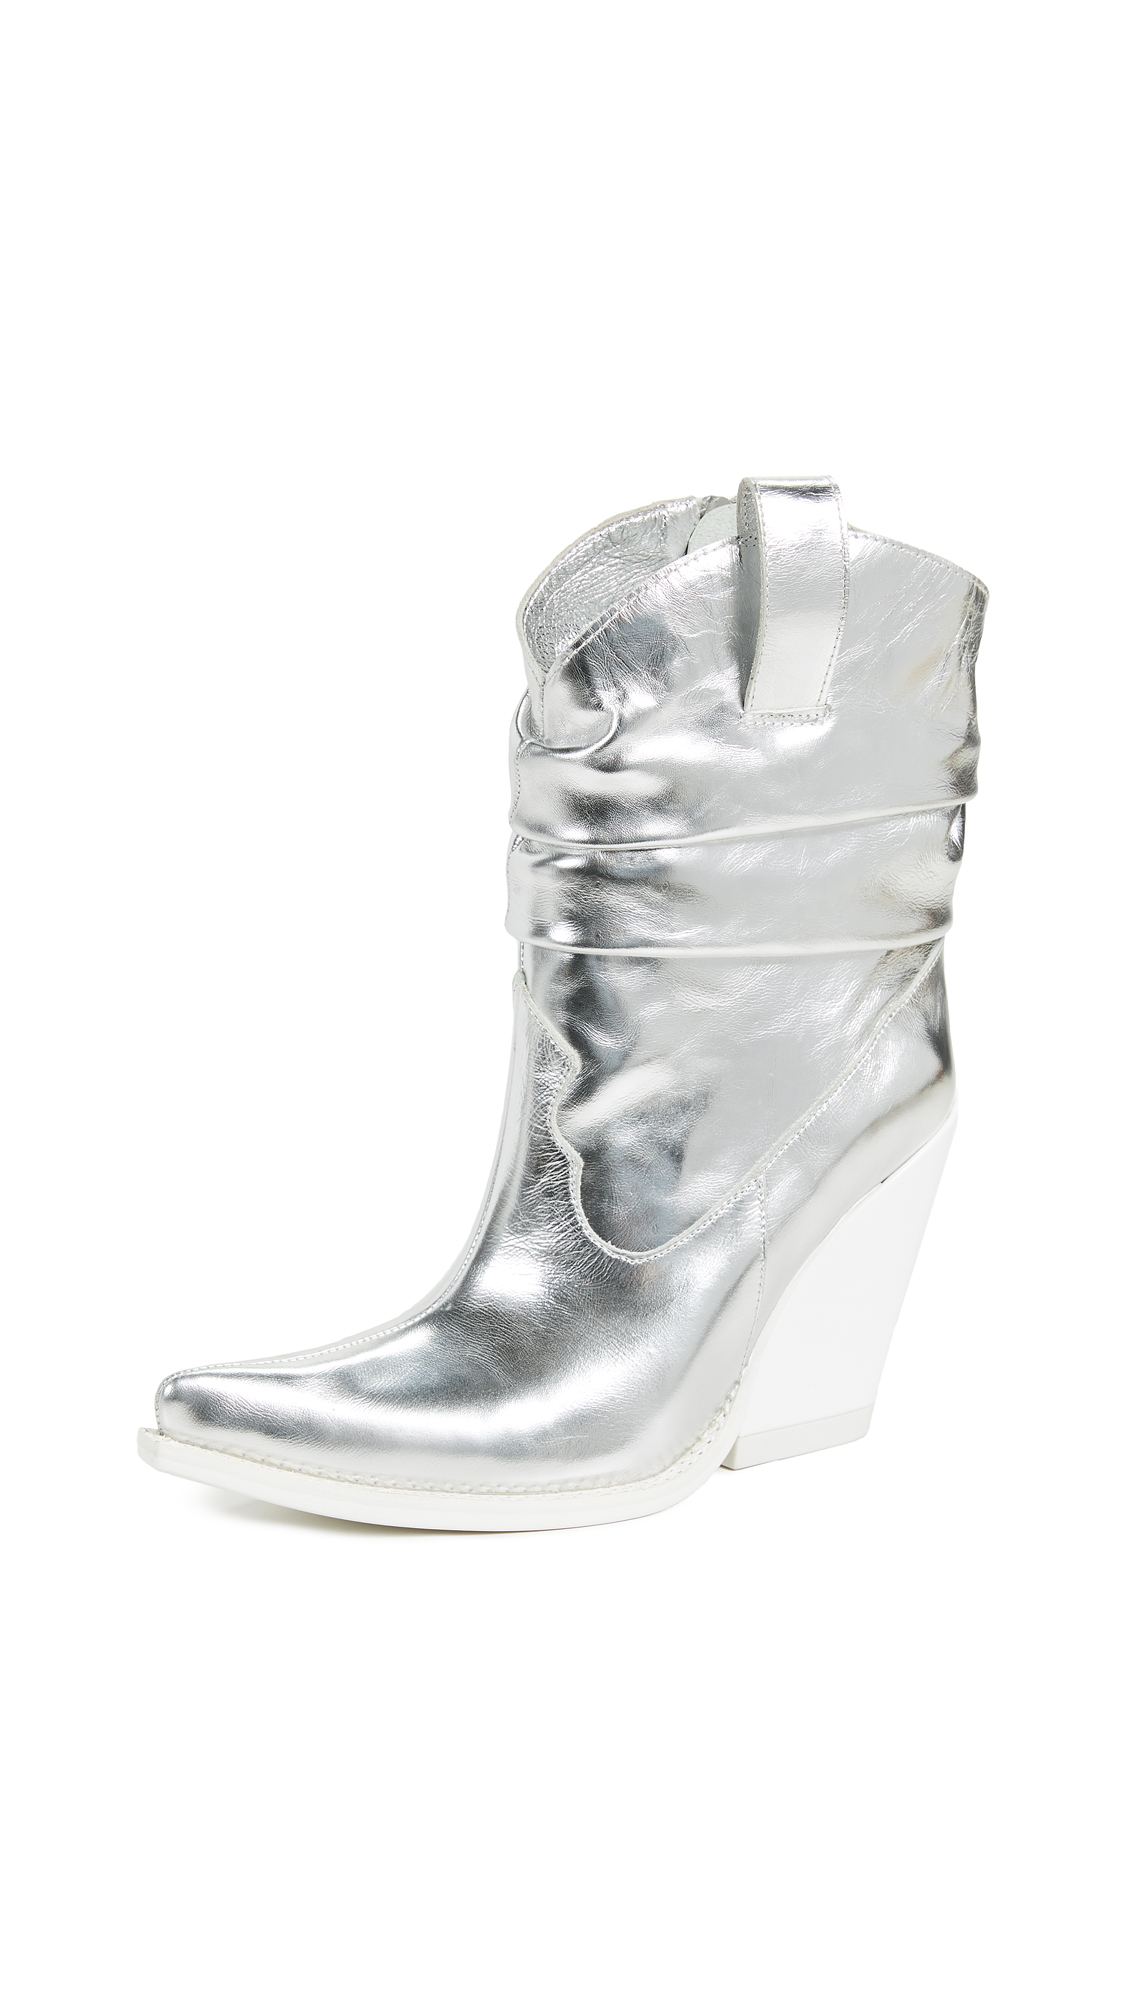 Jeffrey Campbell Volcanic Western Boots - Silver/White